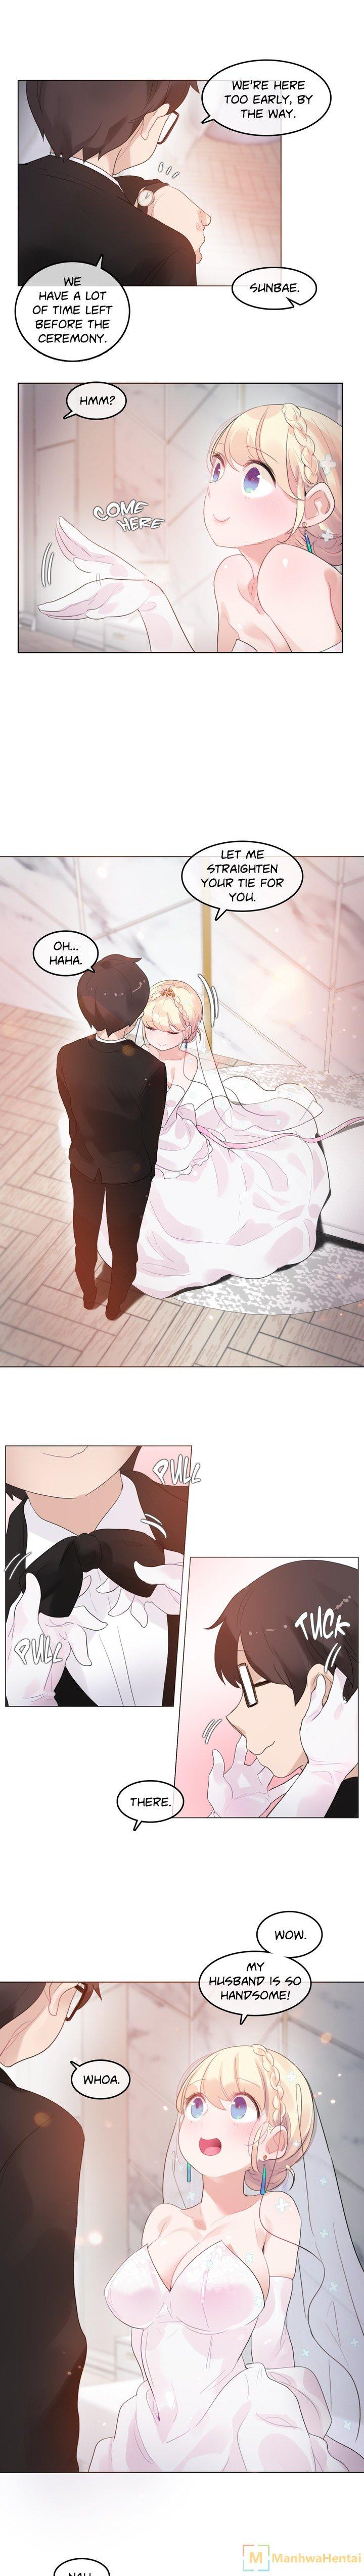 A Pervert's Daily Life Ch. 35-71 472